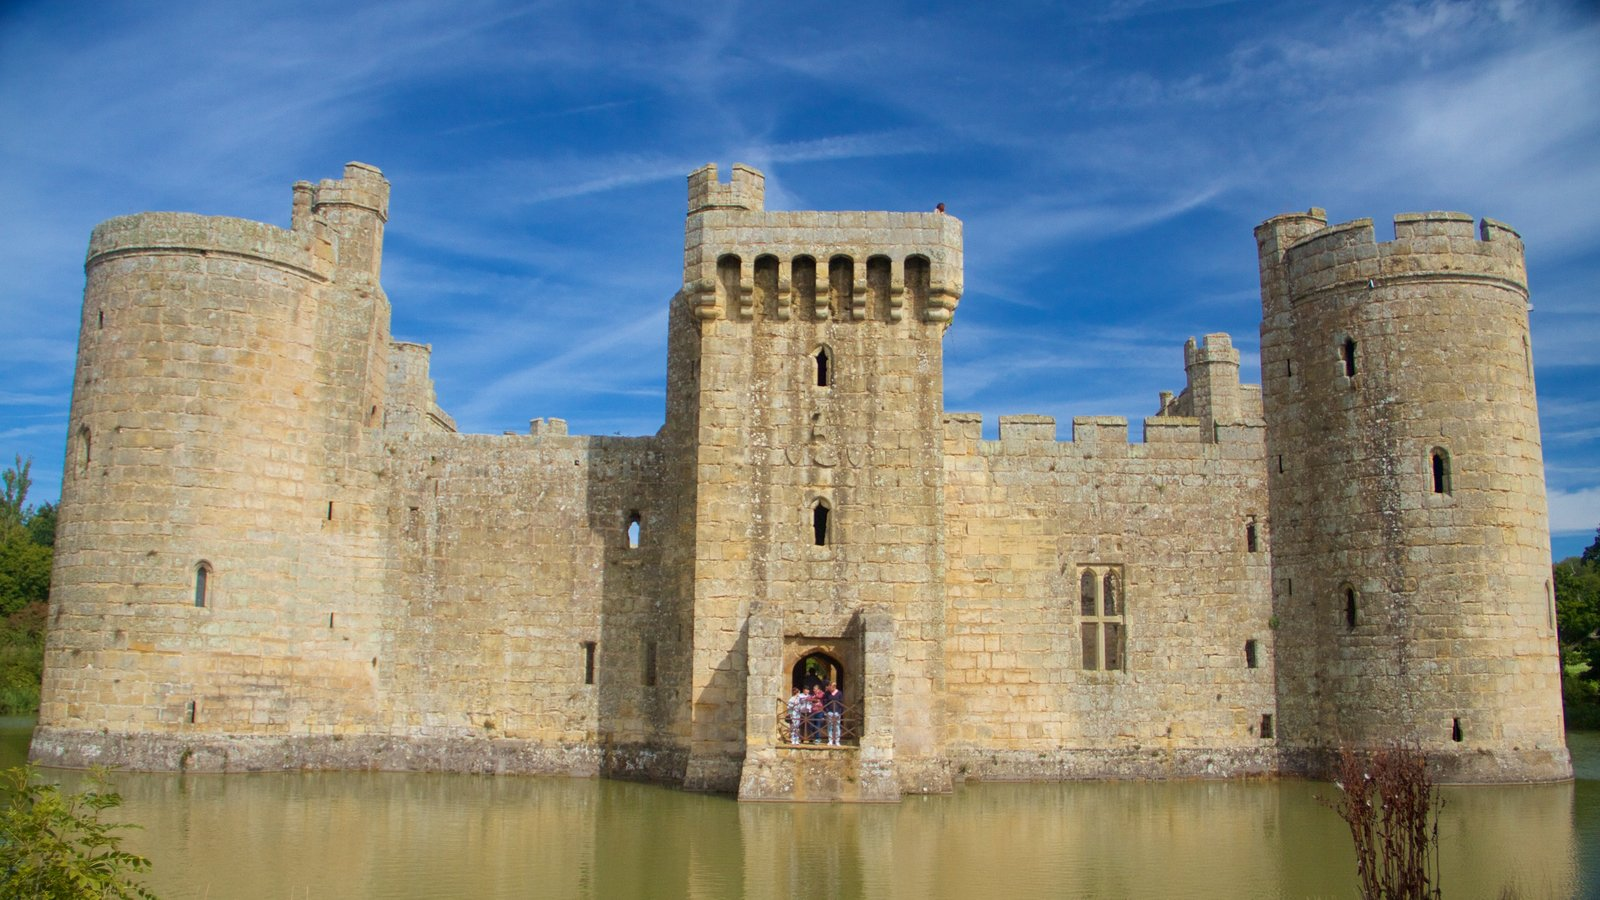 Bodiam Castle featuring chateau or palace and heritage elements